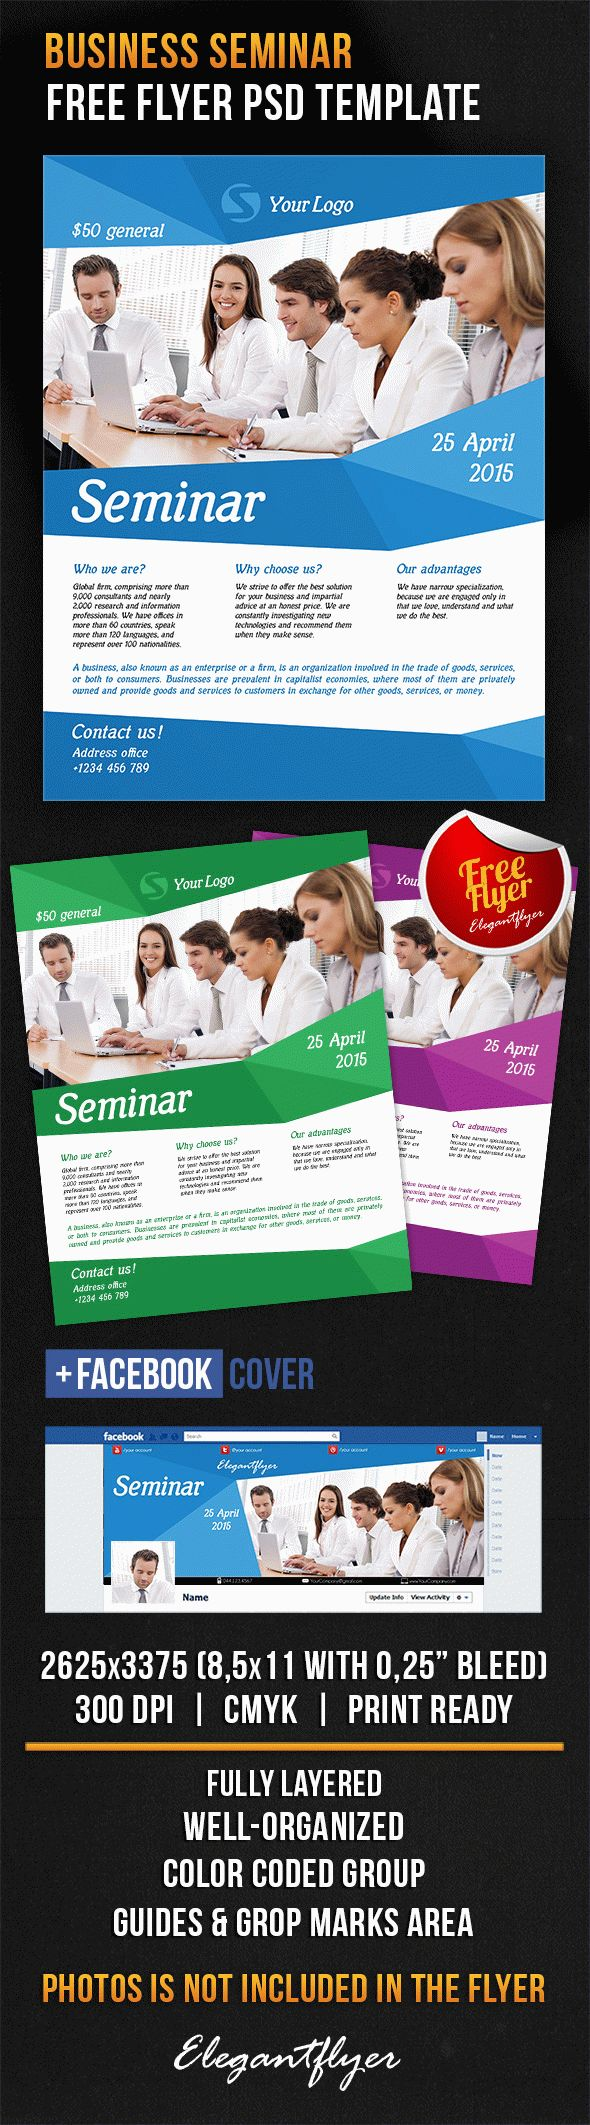 Business seminar free flyer psd template by elegantflyer for Free business flyer templates